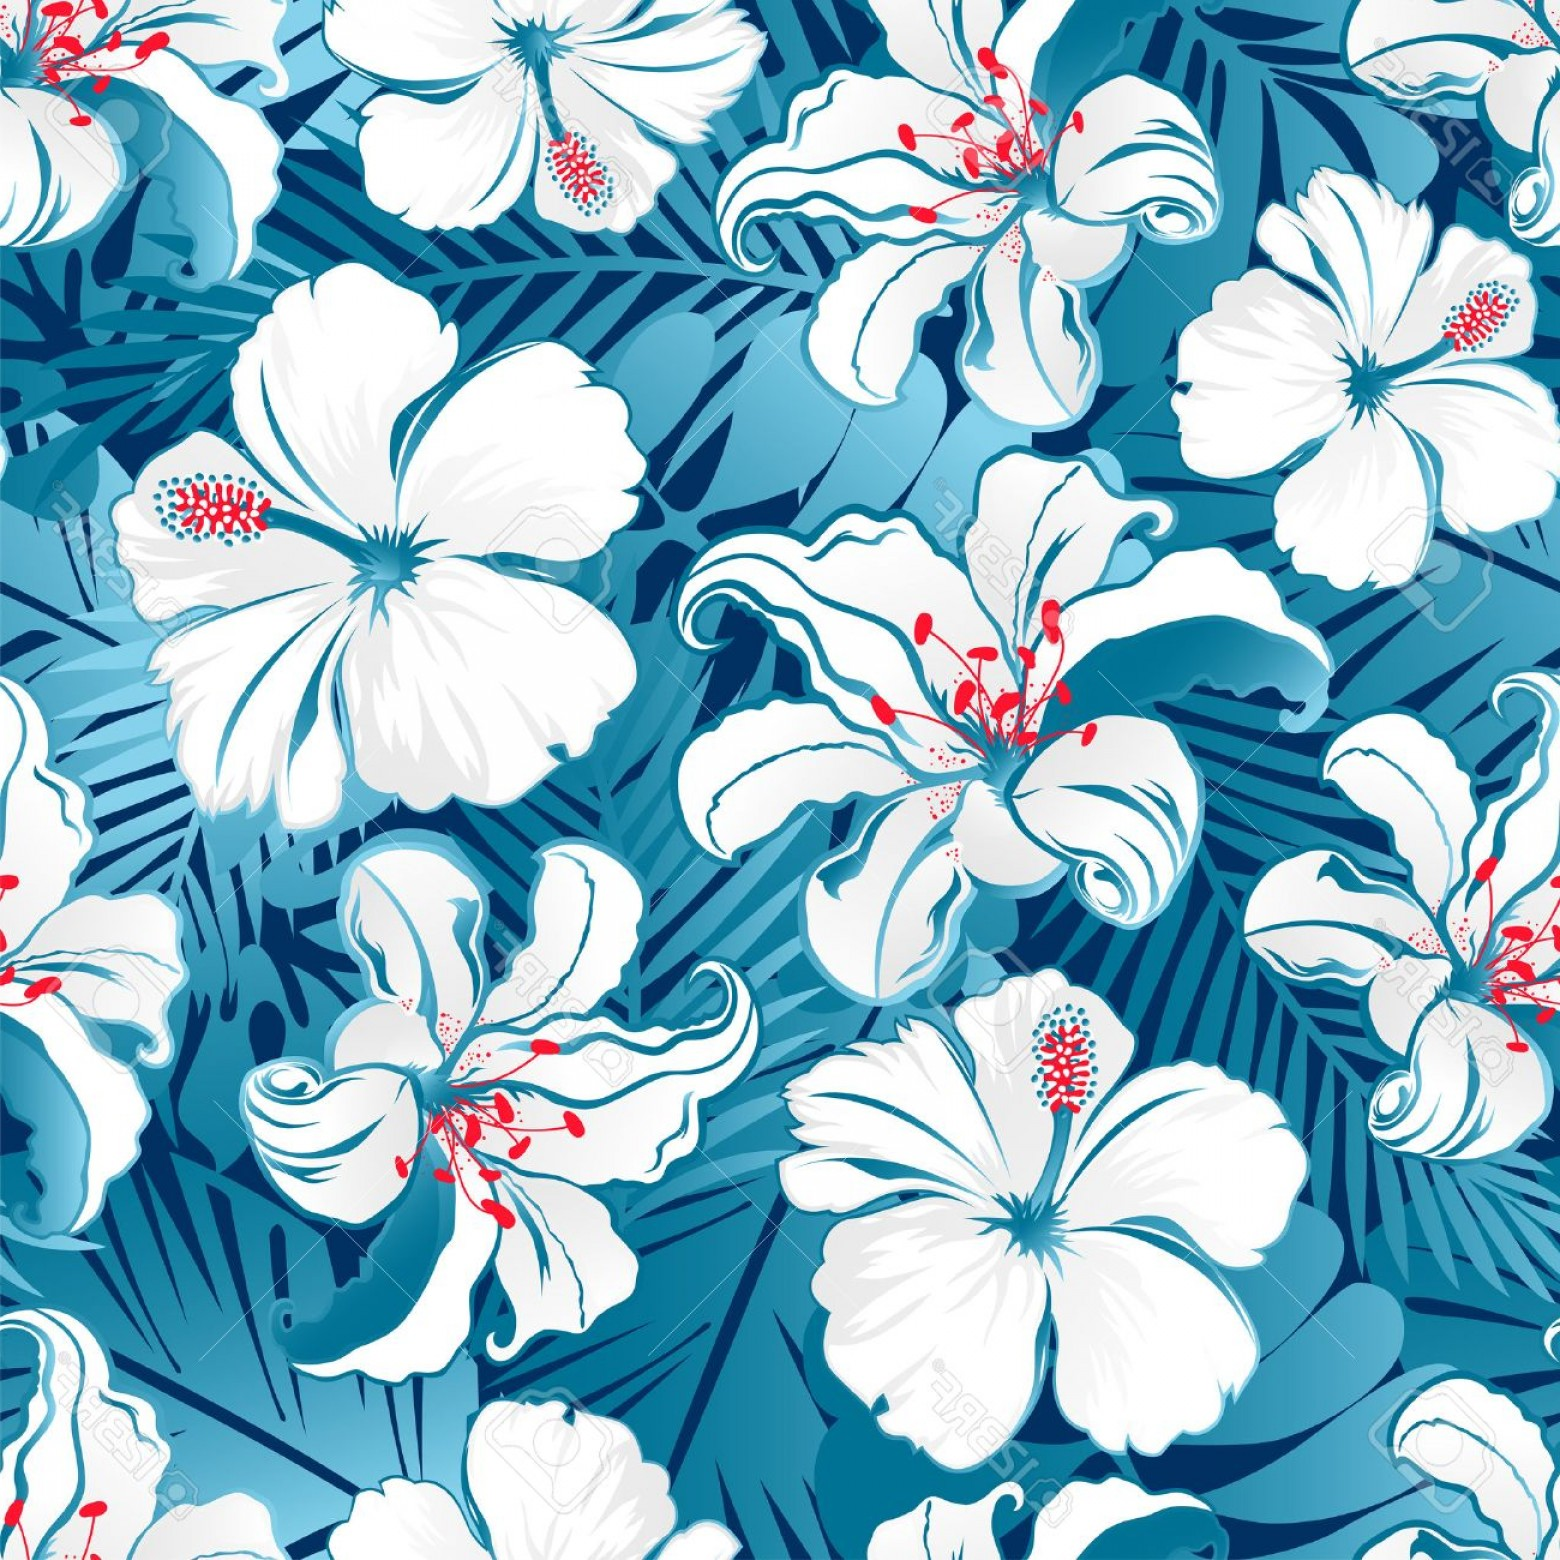 Hawaiian Flower Seamless Vector Pattern: Trendy Photostock Vector White Tropical Hibiscus Flowers Seamless Pattern On A Blue Background